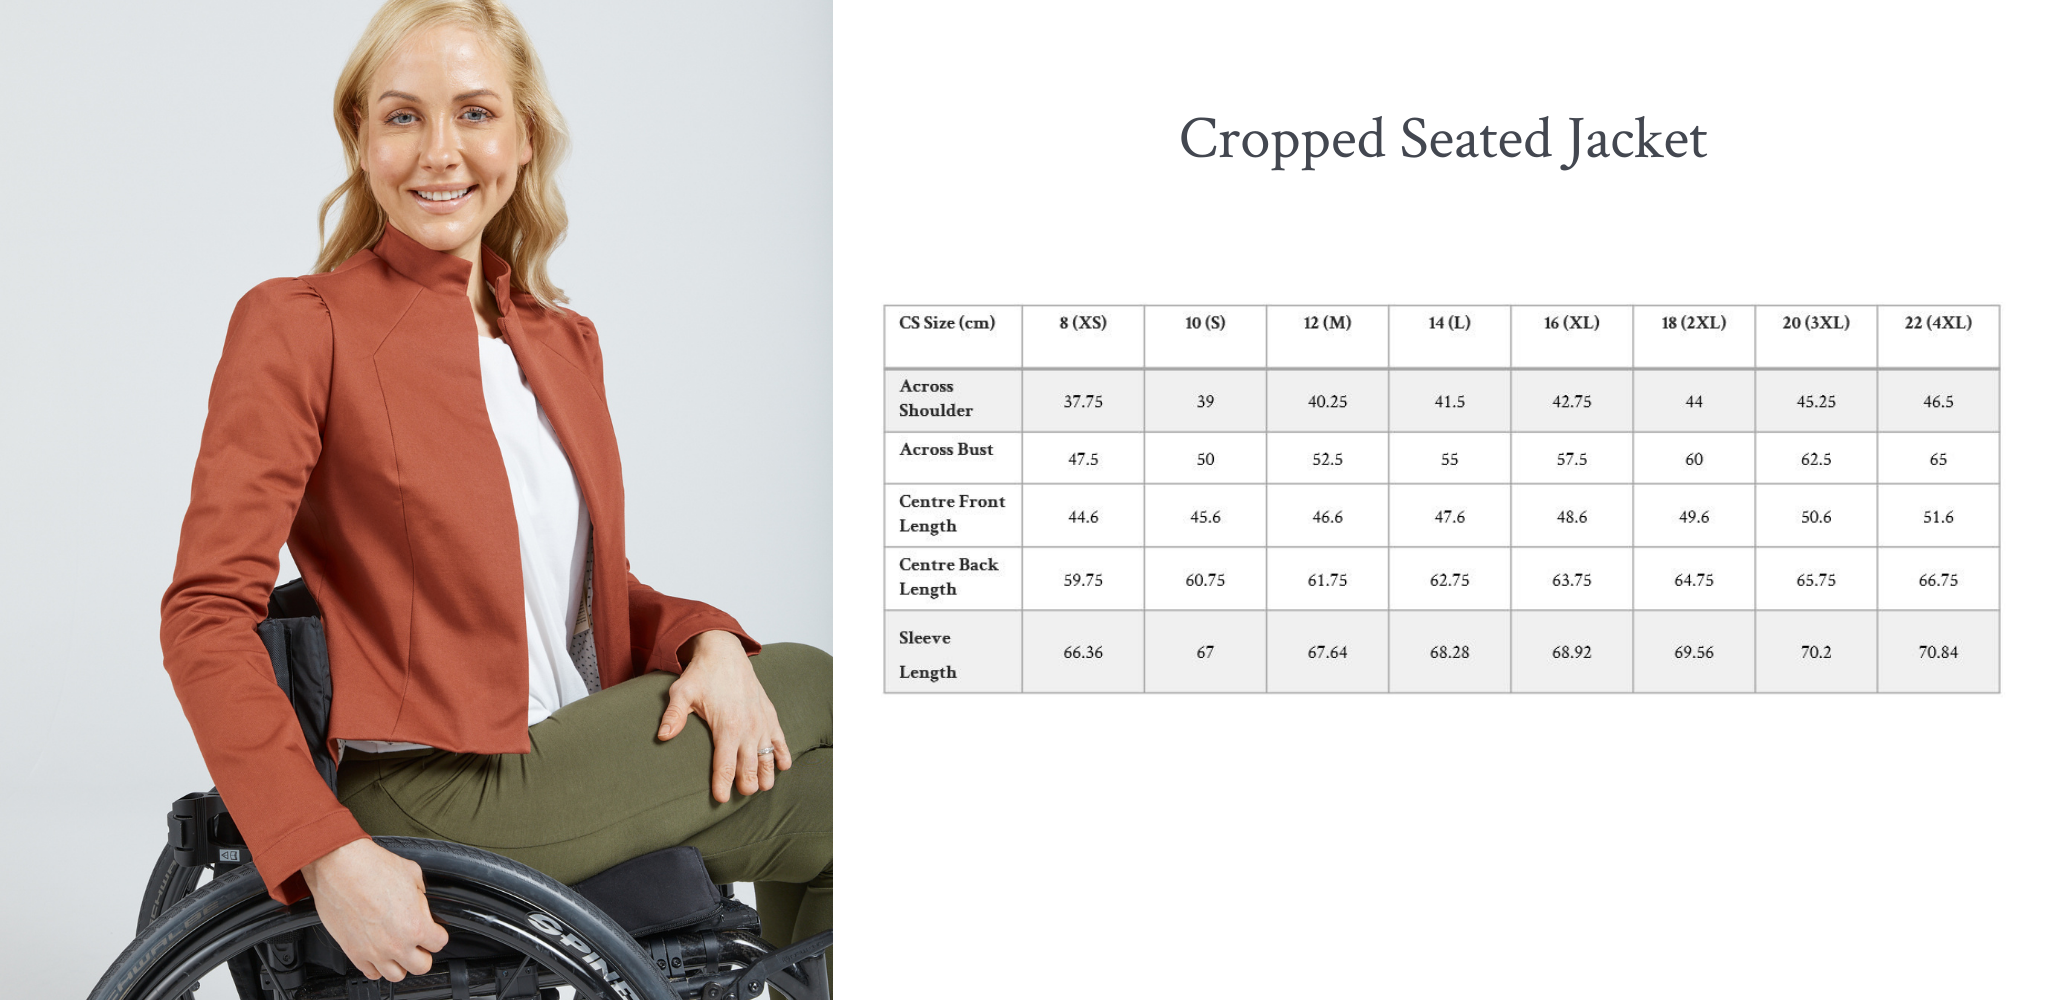 Christina Stephens adaptive clothing, cropped seated jacket in brick red